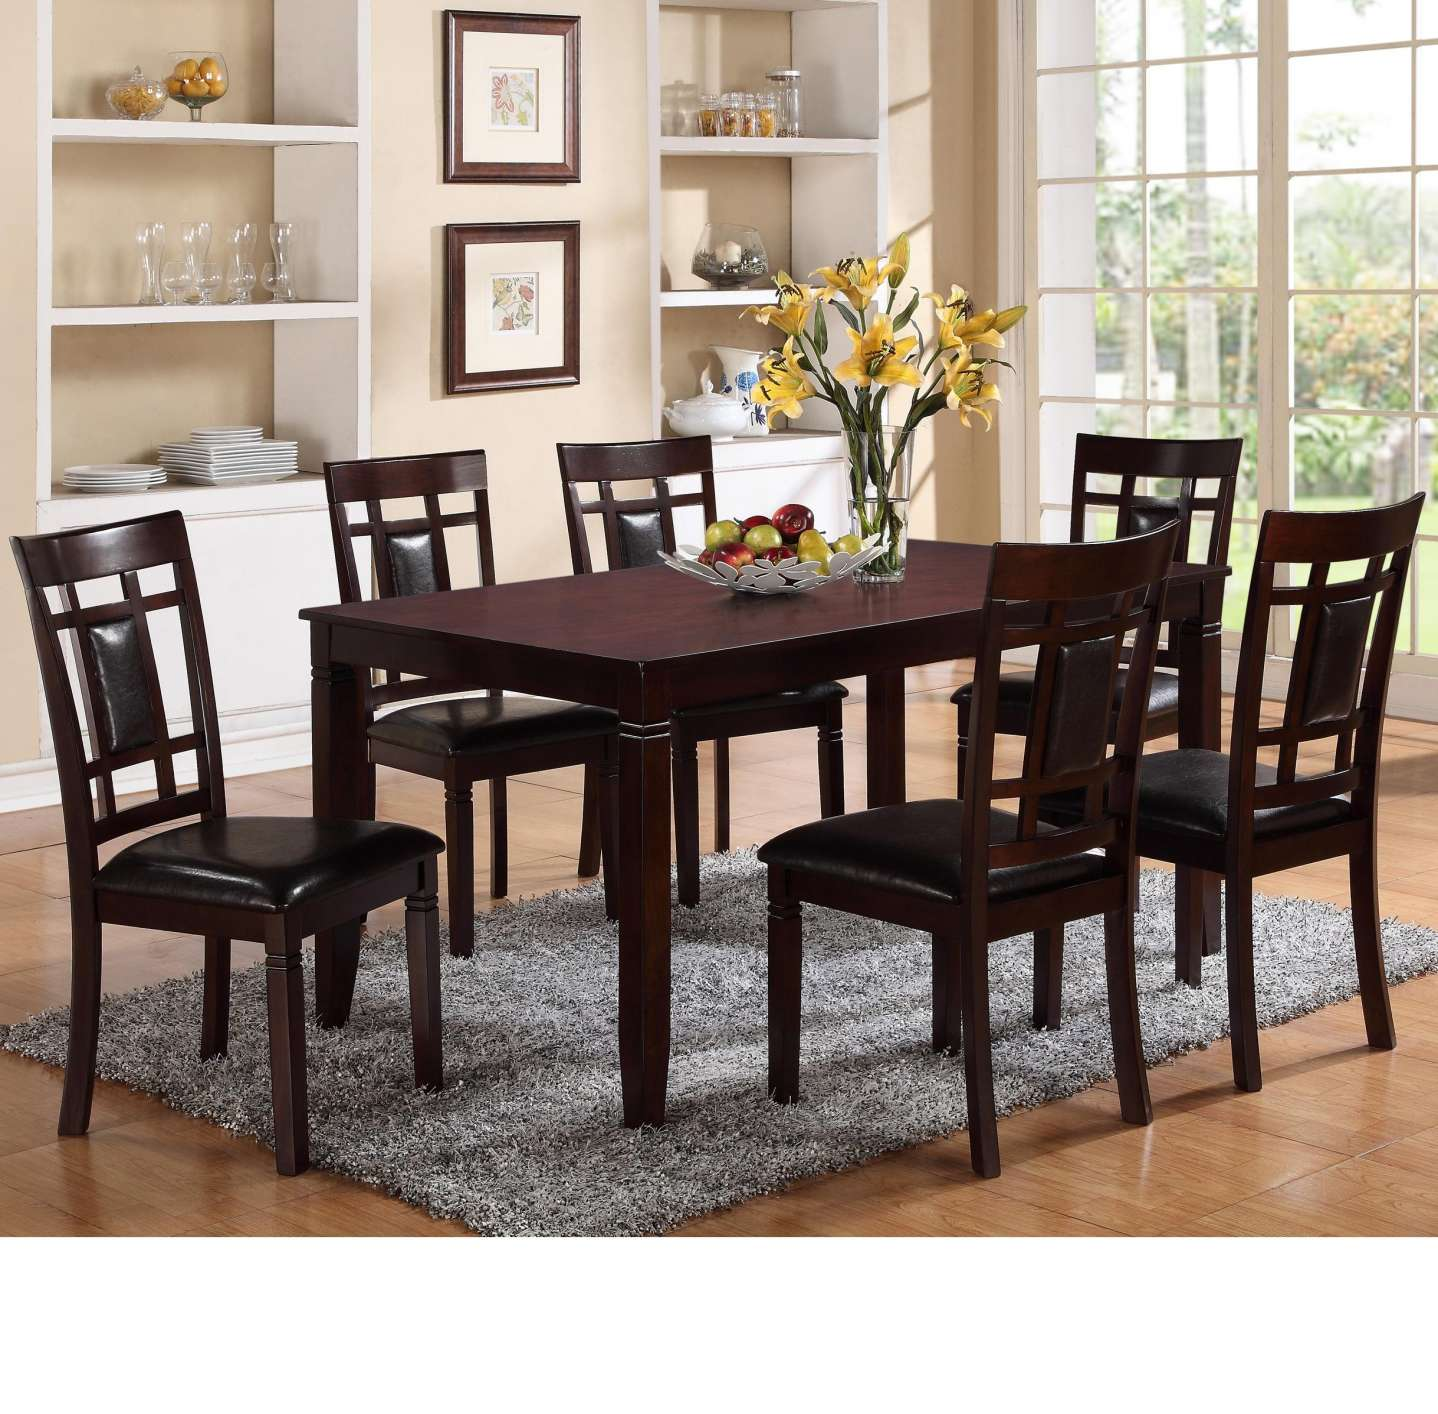 dining room accent pieces also small wall decor ideas meilleur scpi crown mark paige piece table and chair set with block feets for home design black perspex coffee hall chest